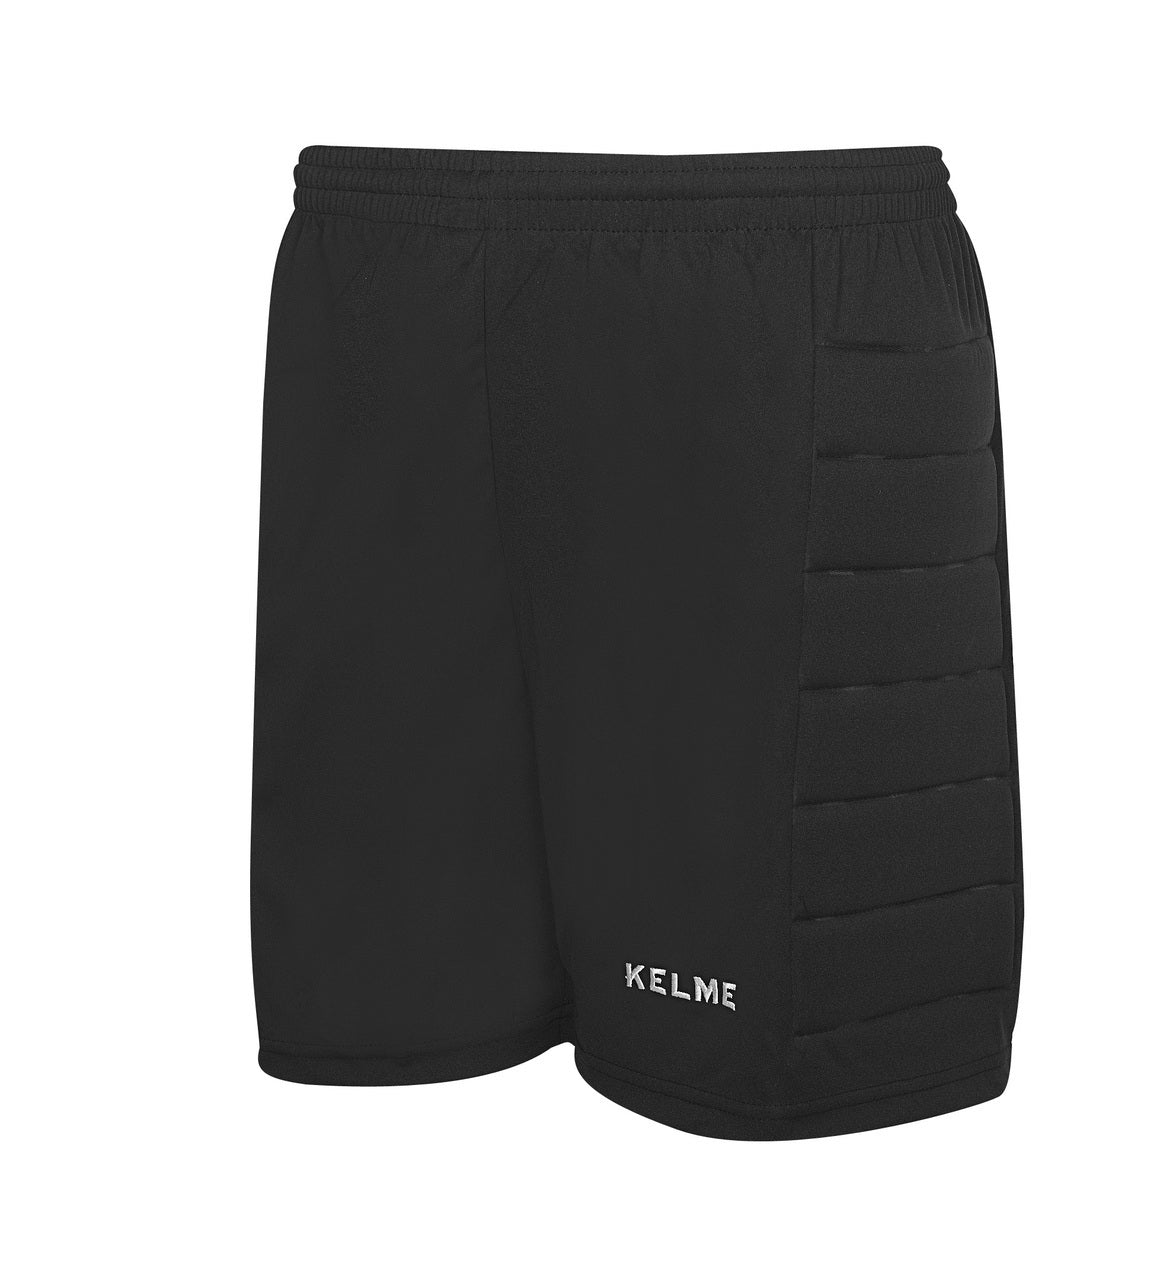 Kelme Attack Padded Goalkeeper Shorts - Youth